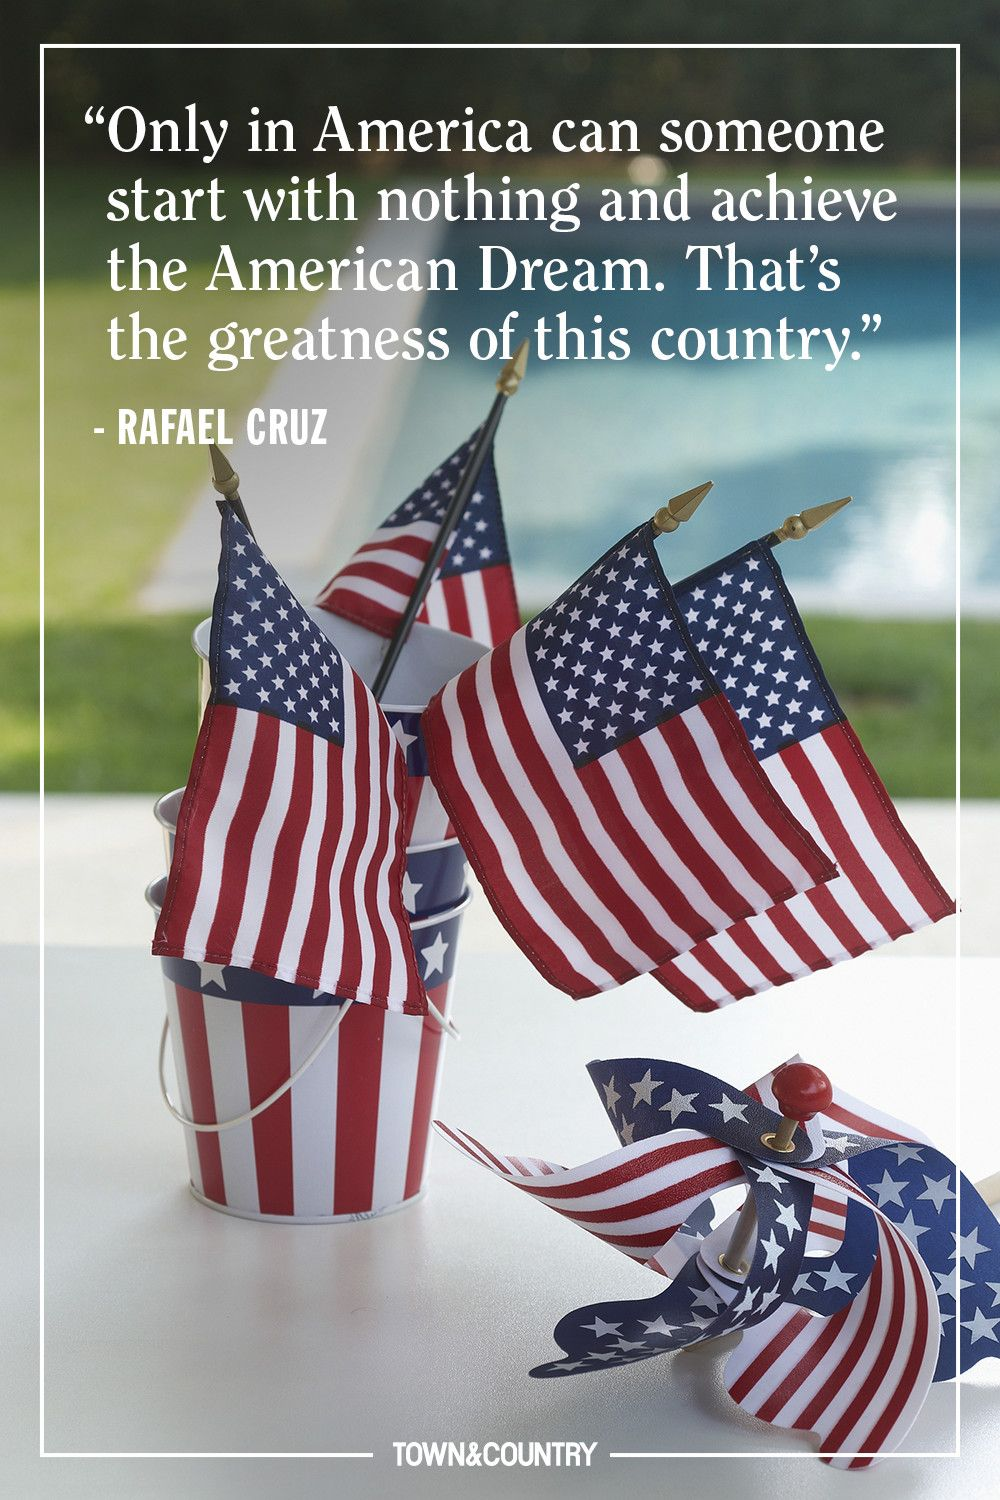 15 Best 4th Of July Quotes Top Patriotic Quotes For Independence Day